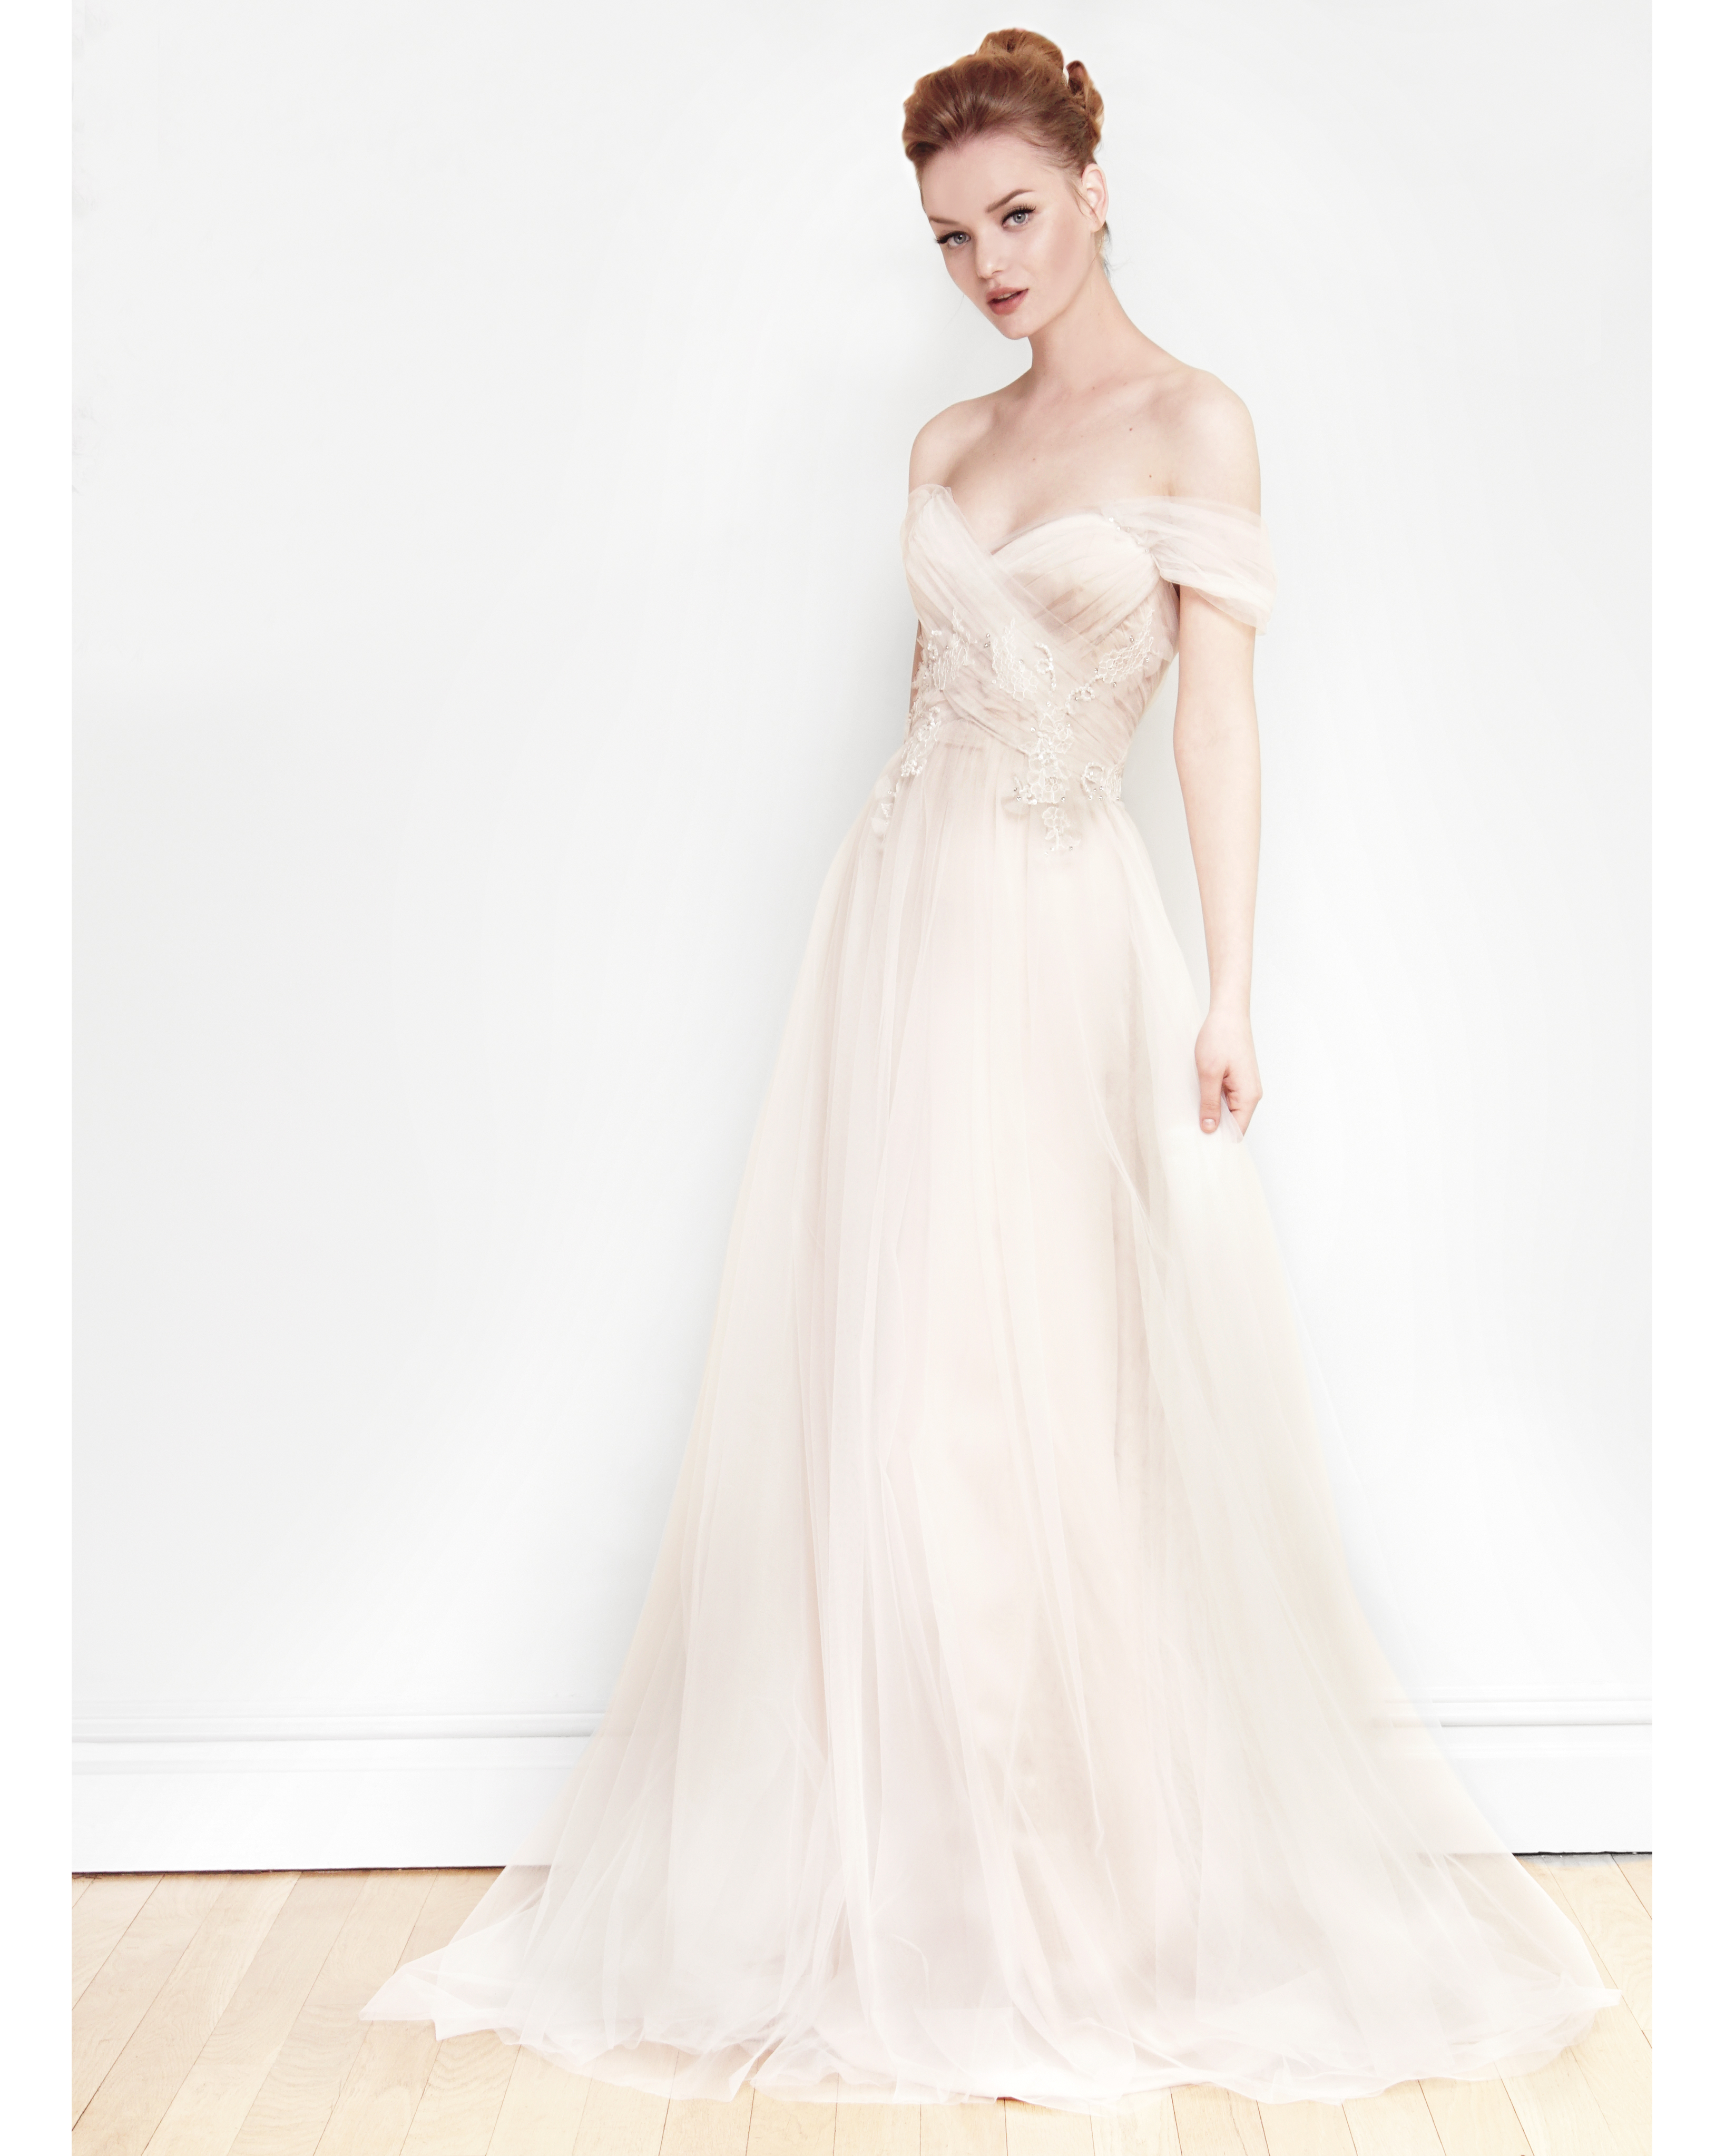 Make a Statement Down the Aisle: 15 Wedding Dresses That Move